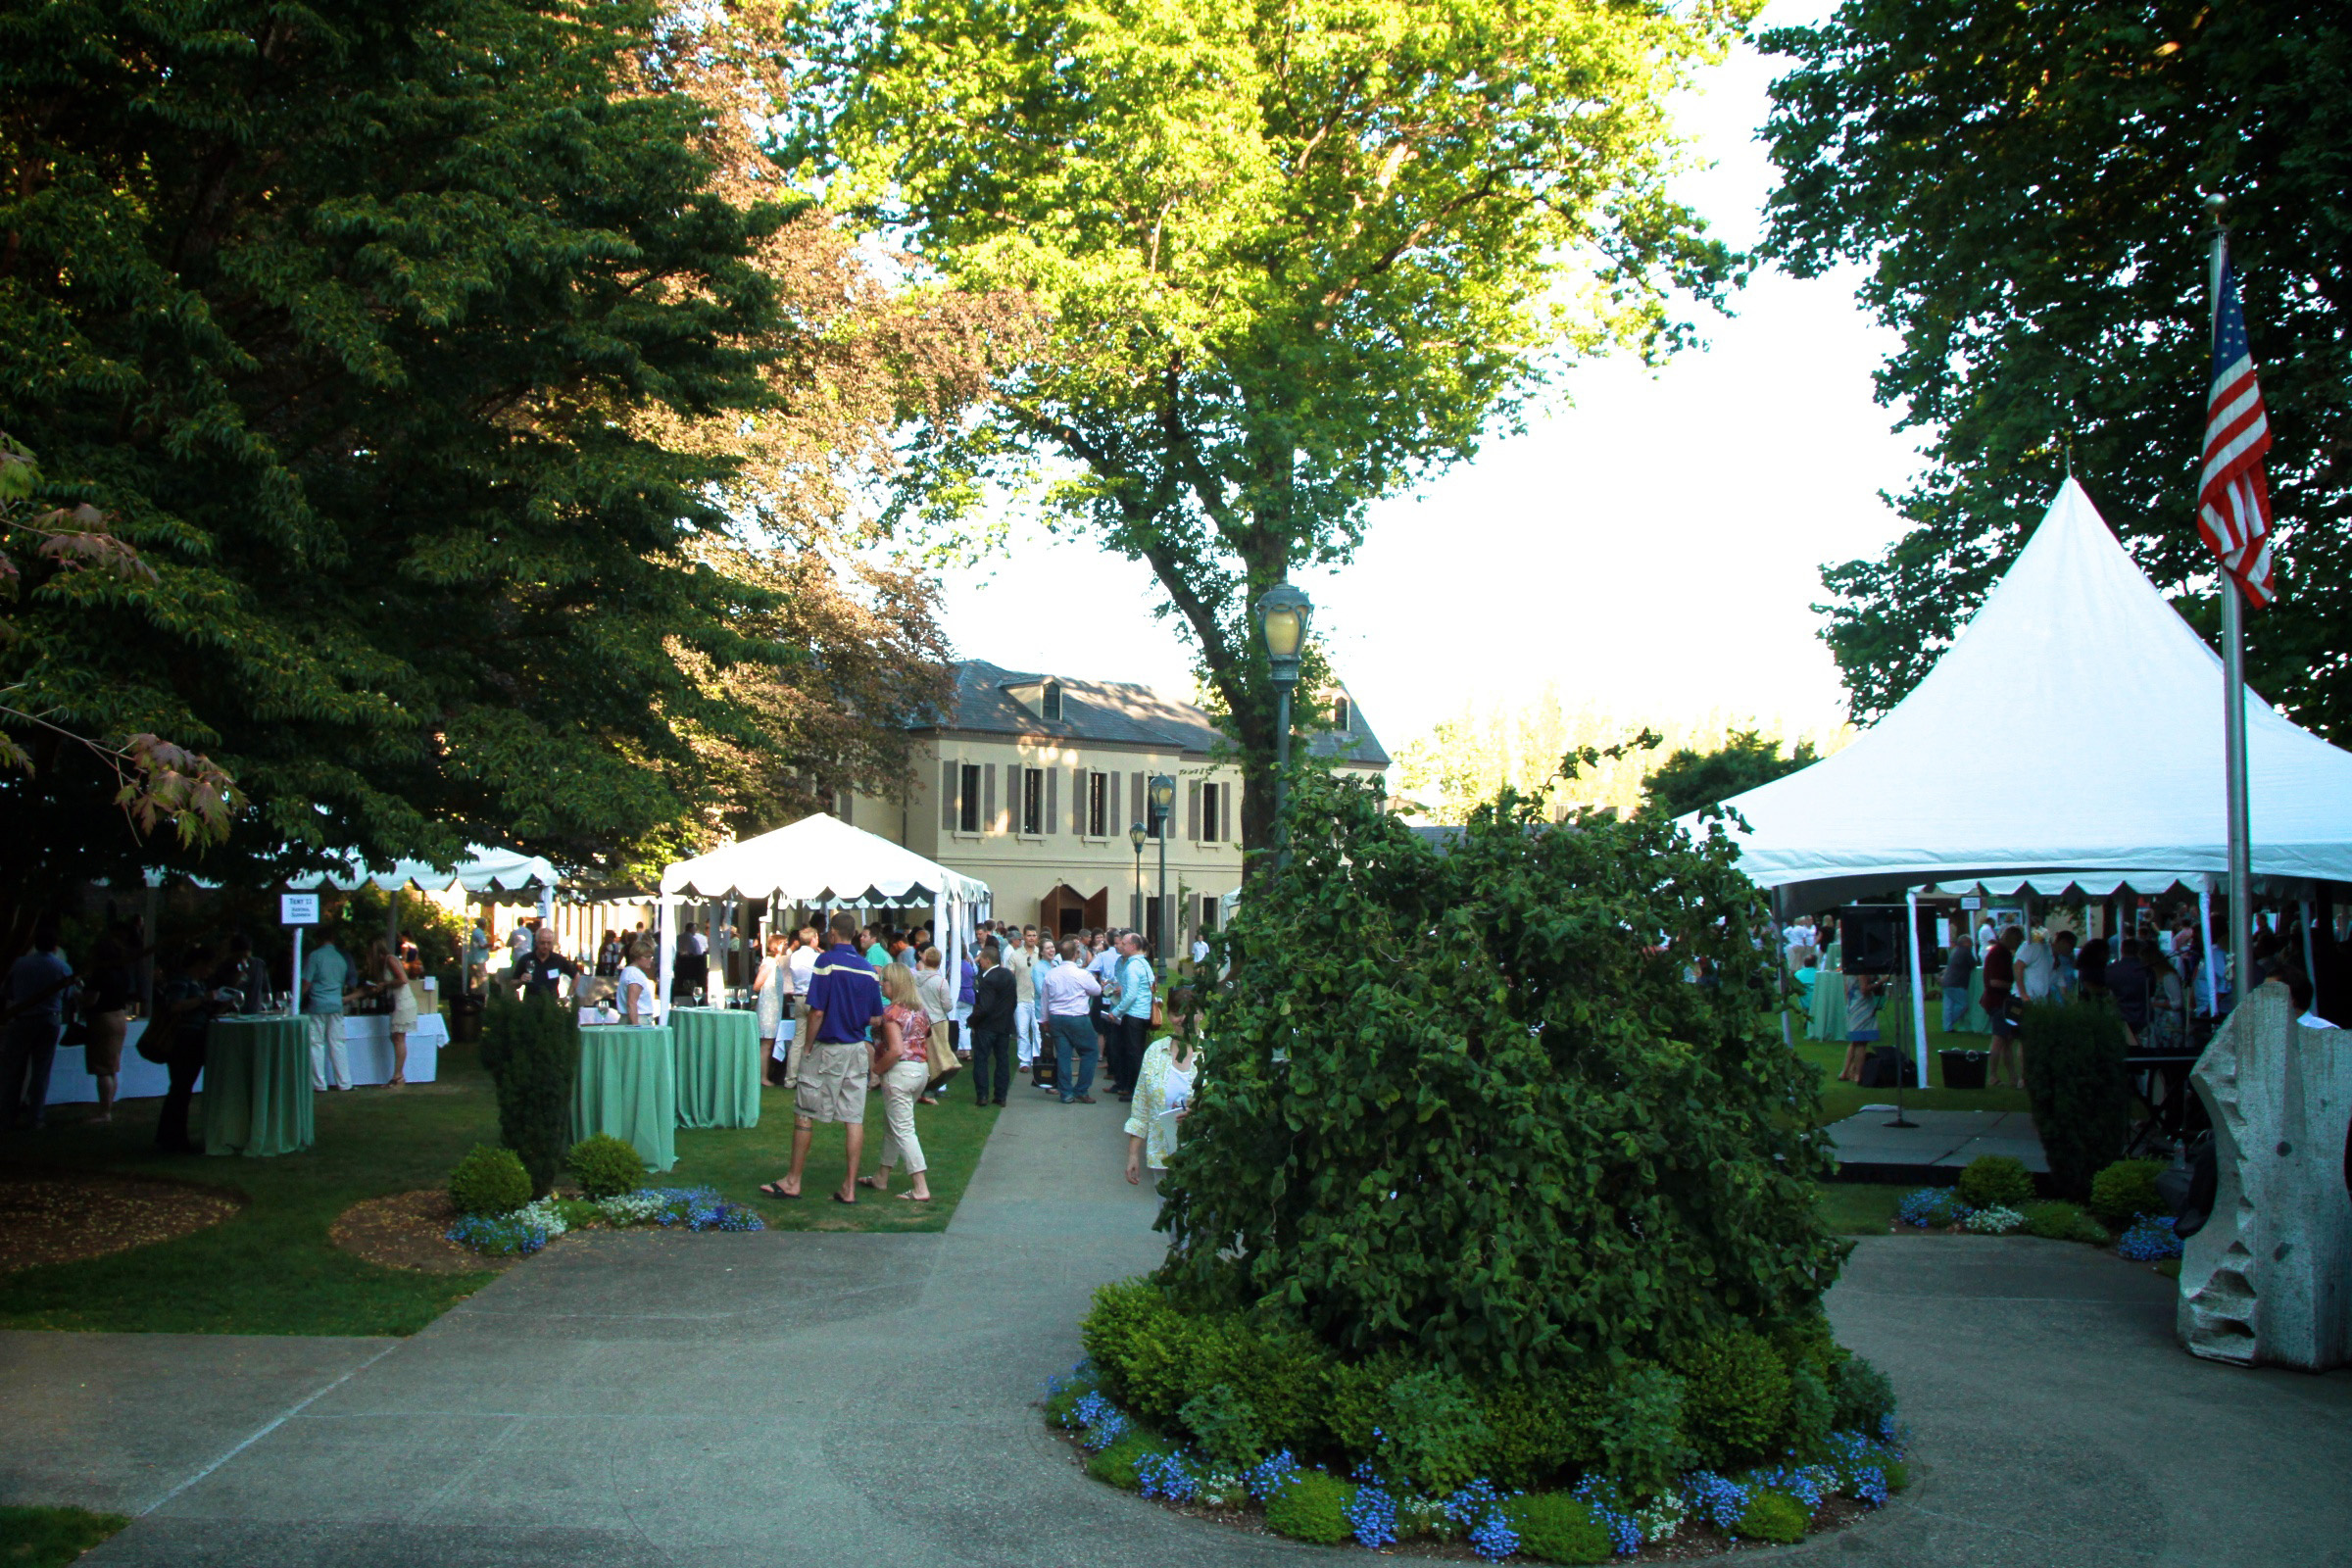 Sample the finest Rieslings from around the globe, mingle with winemakers, savor Riesling friendly cuisine by several of Seattle's popular food trucks and enjoy live music on the picturesque grounds of Chateau Ste. Michelle.